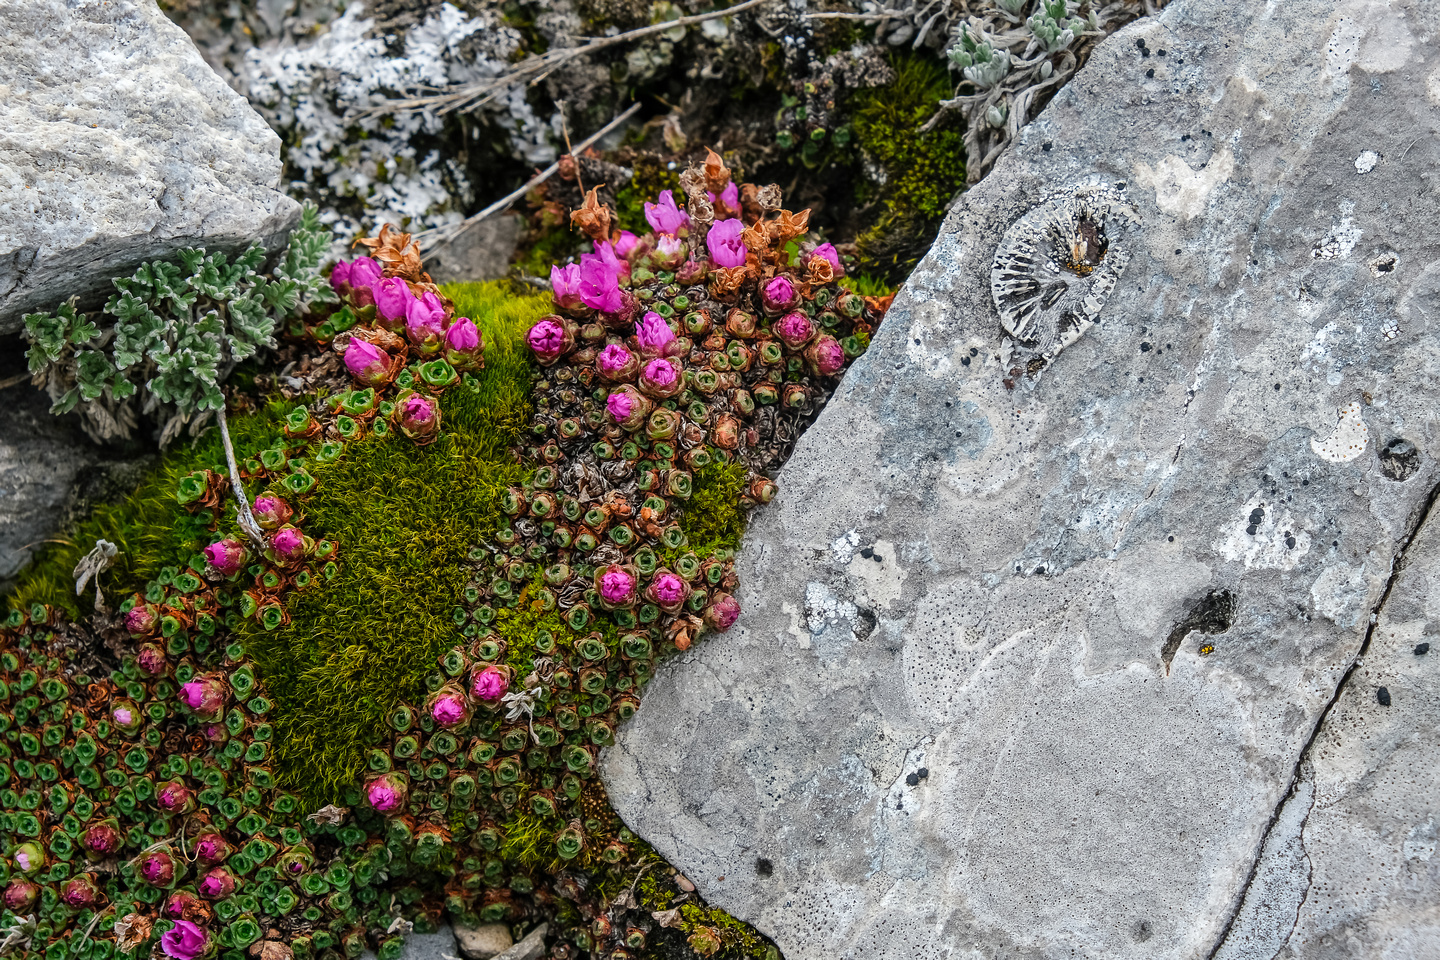 Color and fossil in the rock.